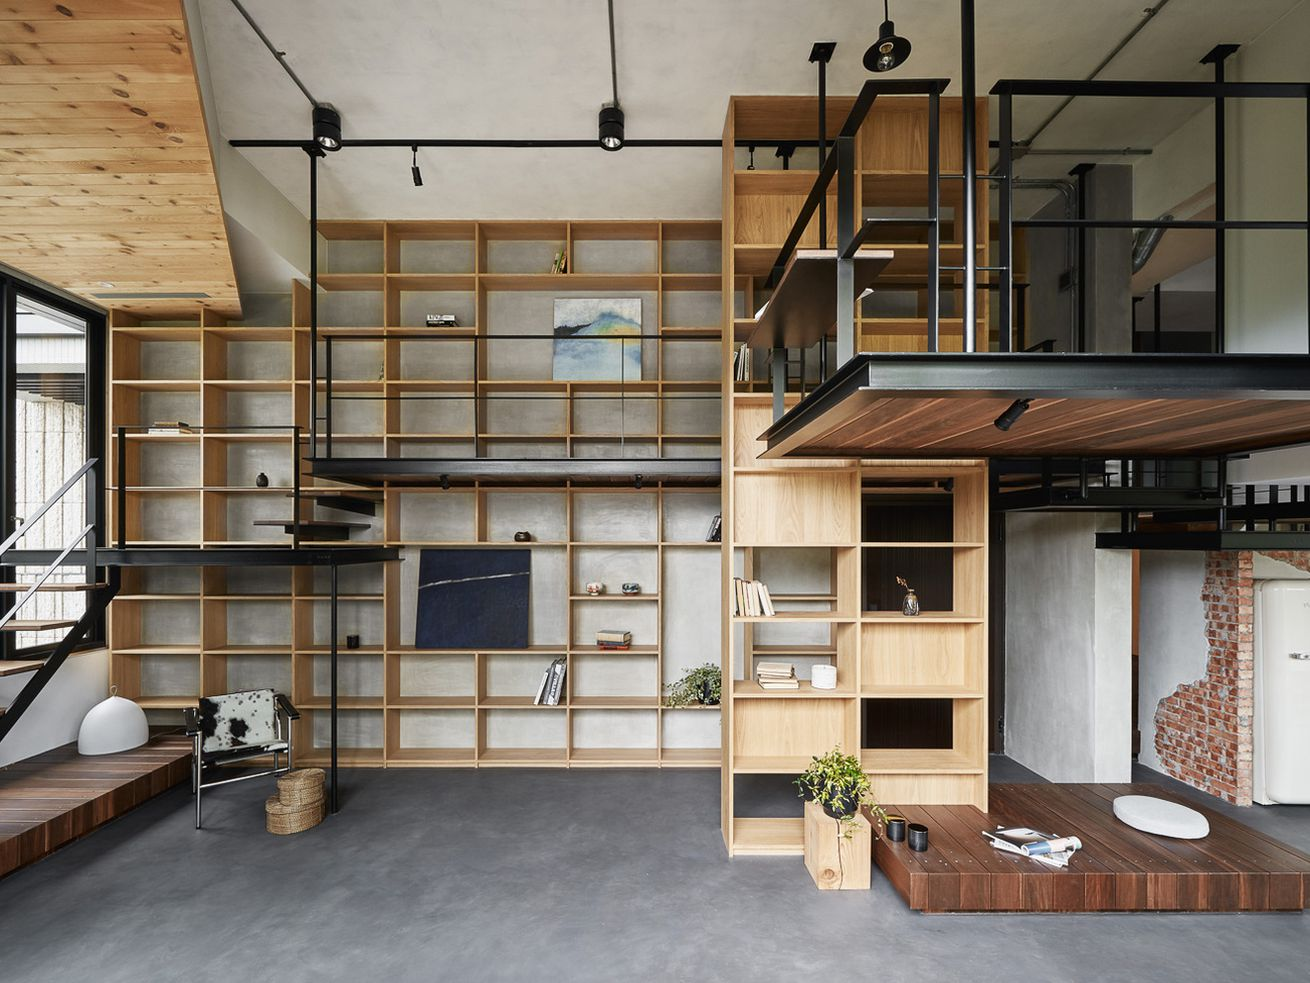 Interior of house with wooden platforms for second-floor circulation and built-in shelving on the back wall.